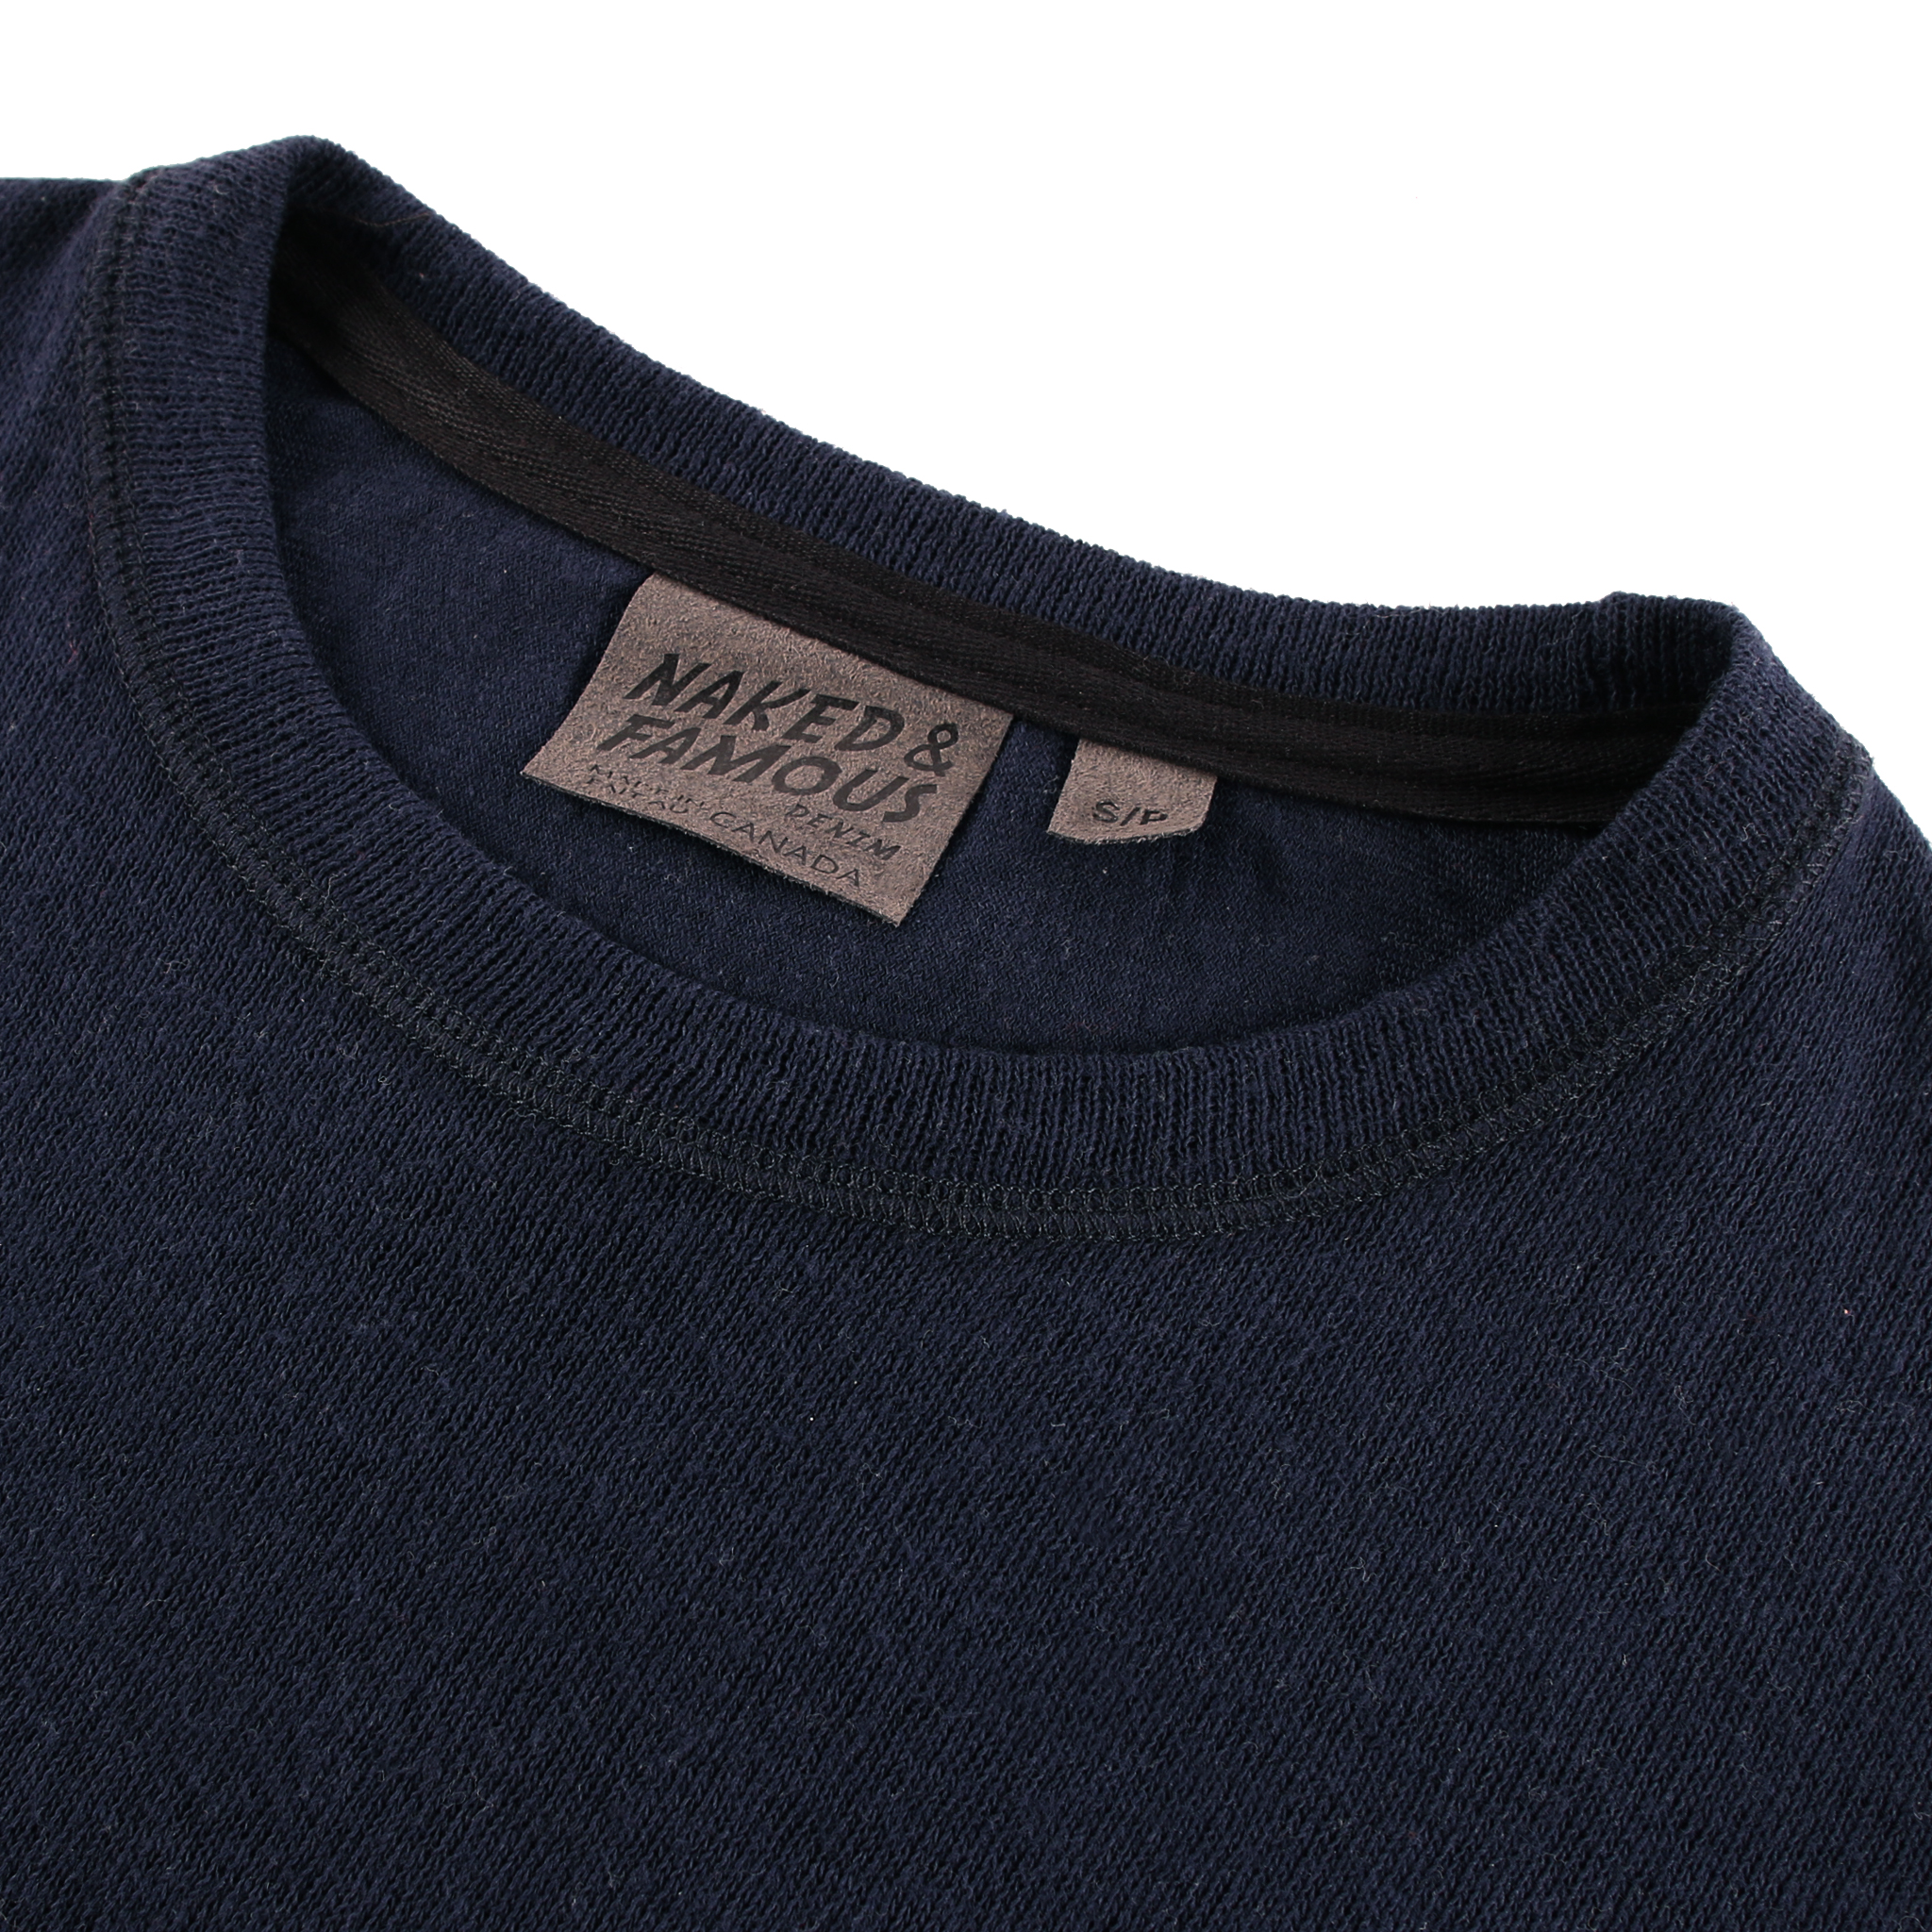 Women's Weekend Crew Vintage Double Face Navy Collar View